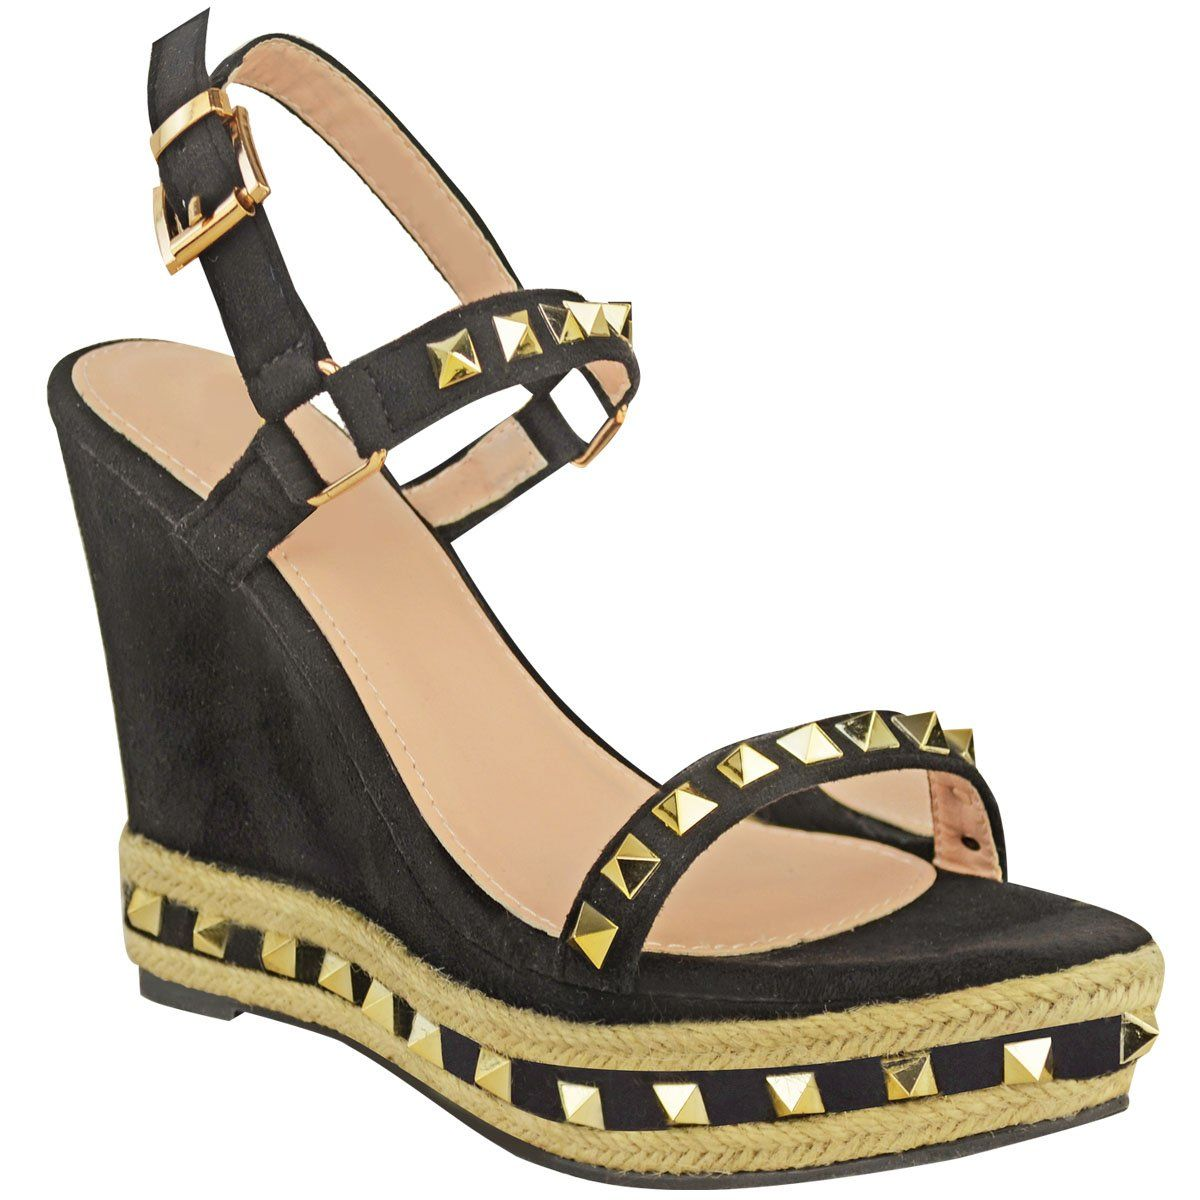 7bddfcabb152 Fashion Thirsty Womens Studded Wedge Sandals Strappy Platforms Denim Summer  Shoes Size     Sincerely hope you actually love the image.